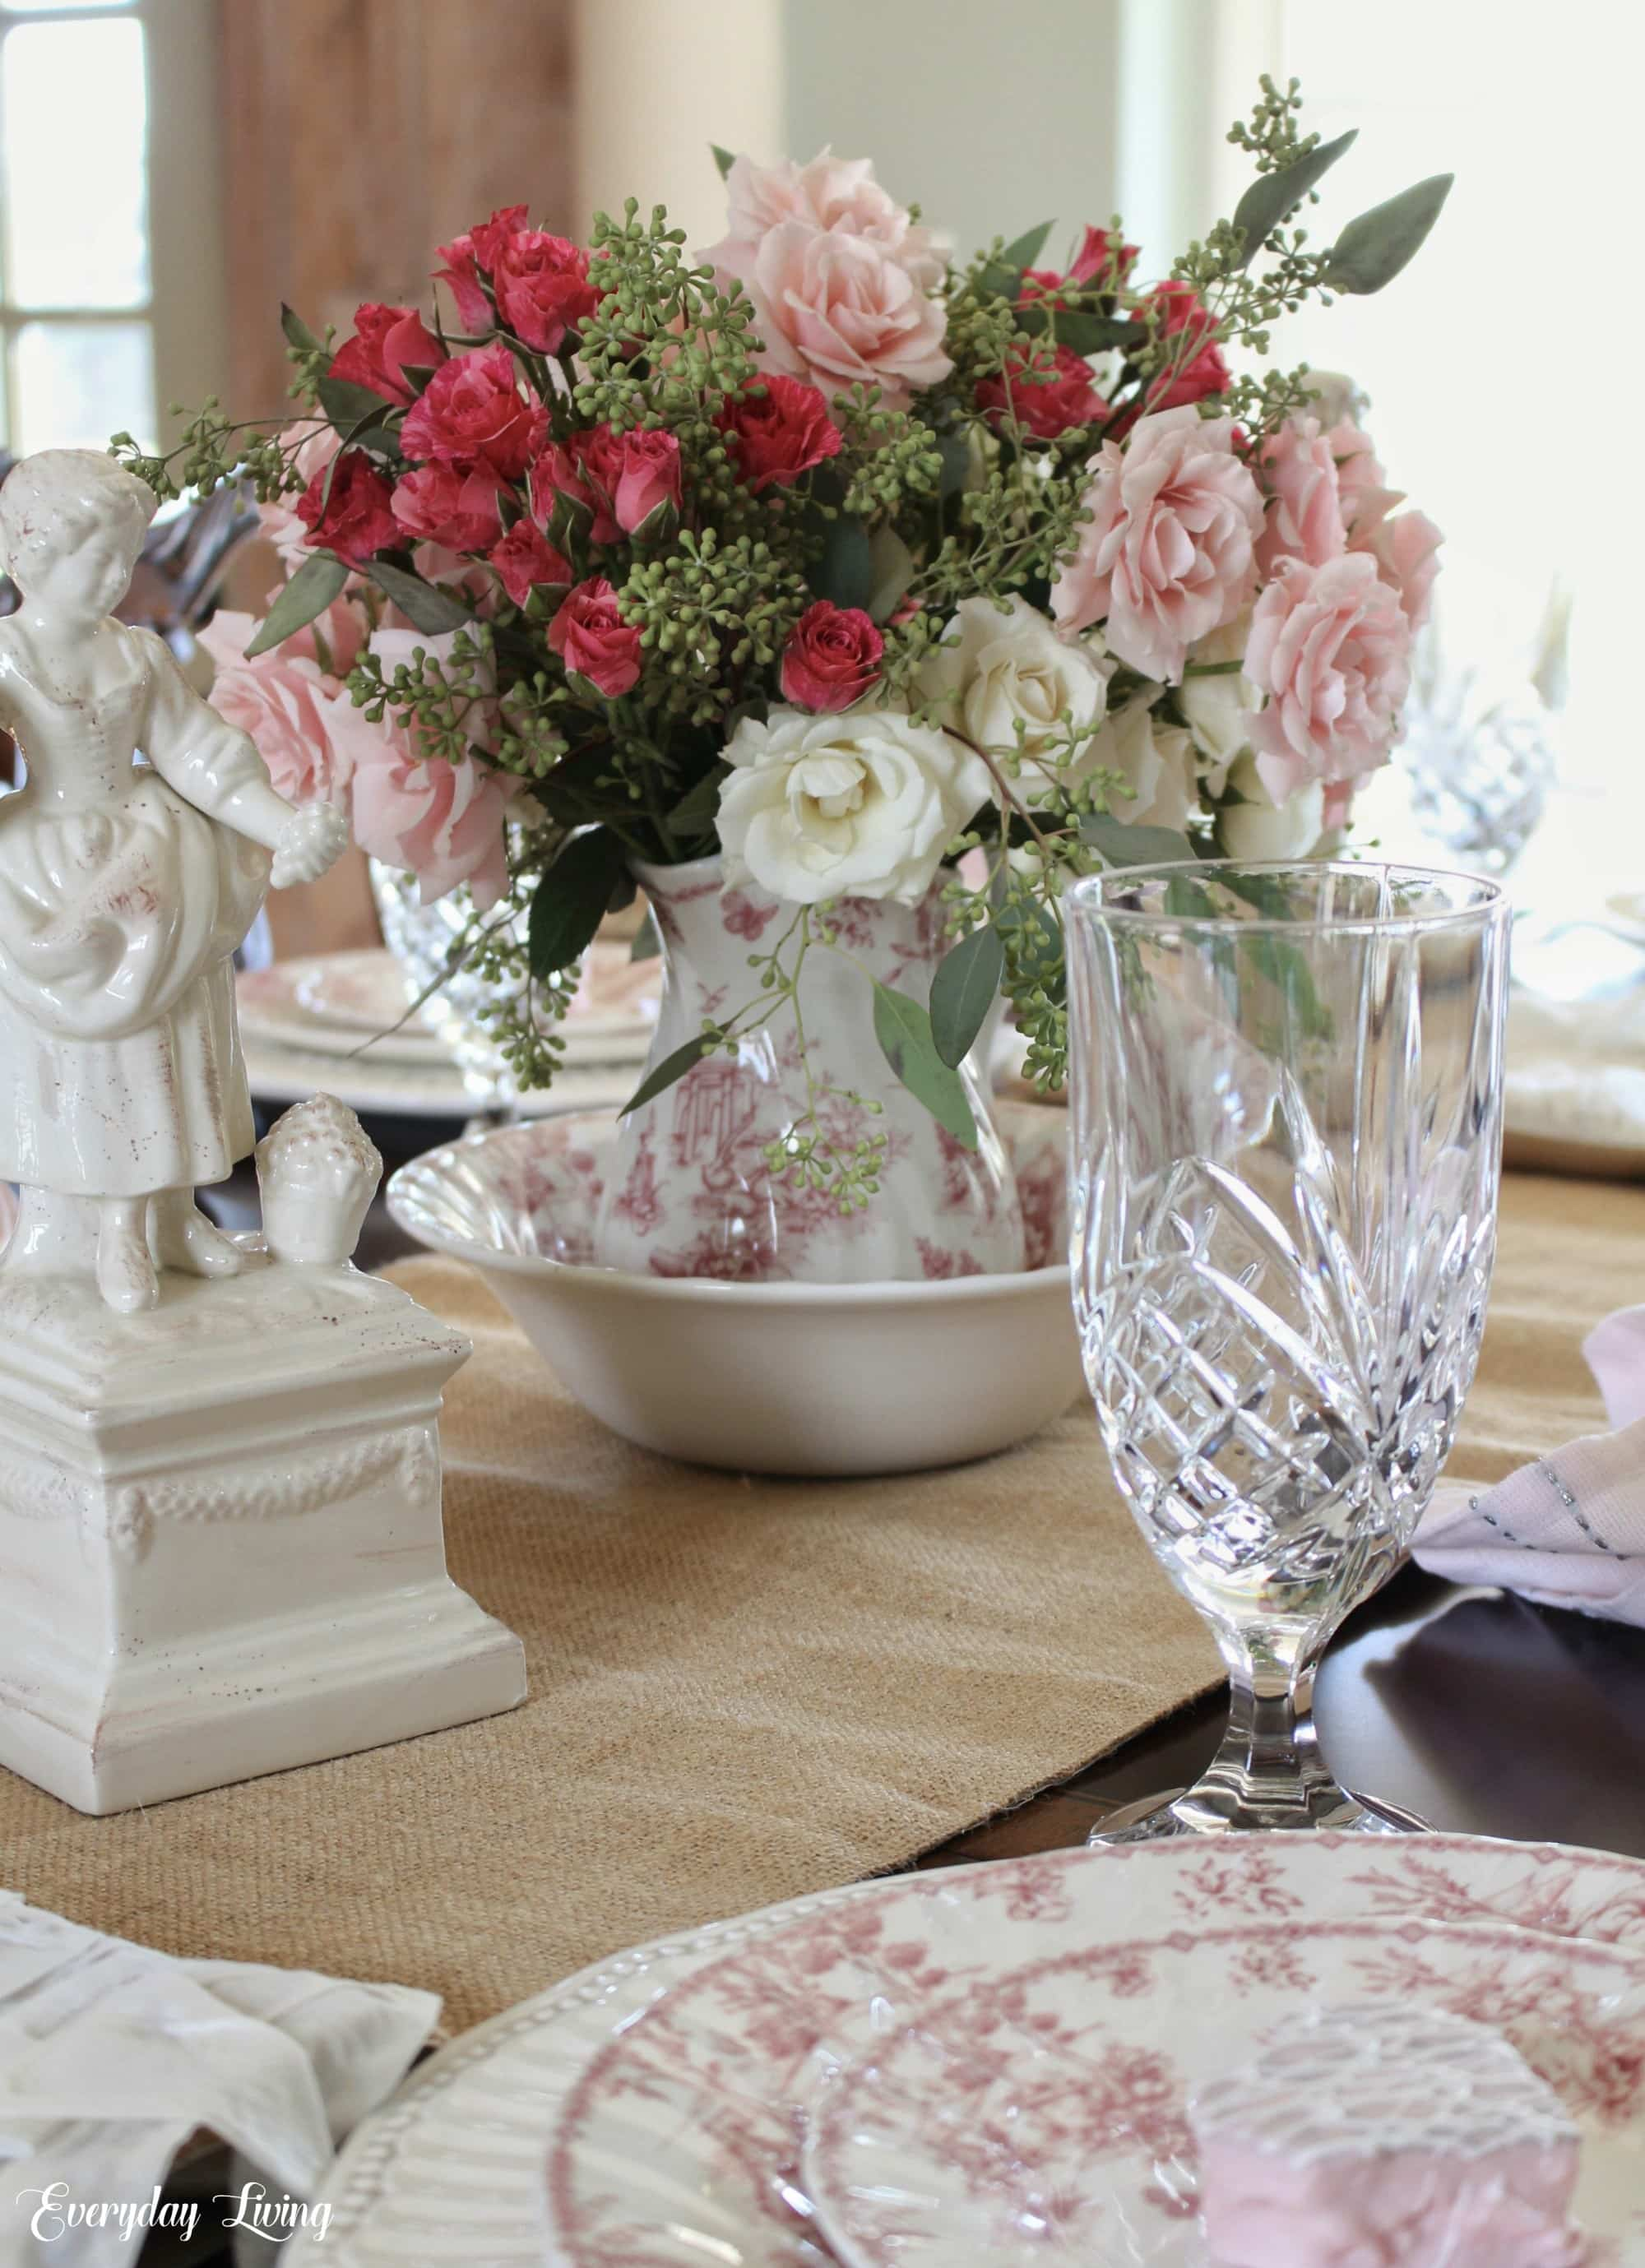 Simple-Valentine-tablescape-using-spray-roses-as-the-centerpiece